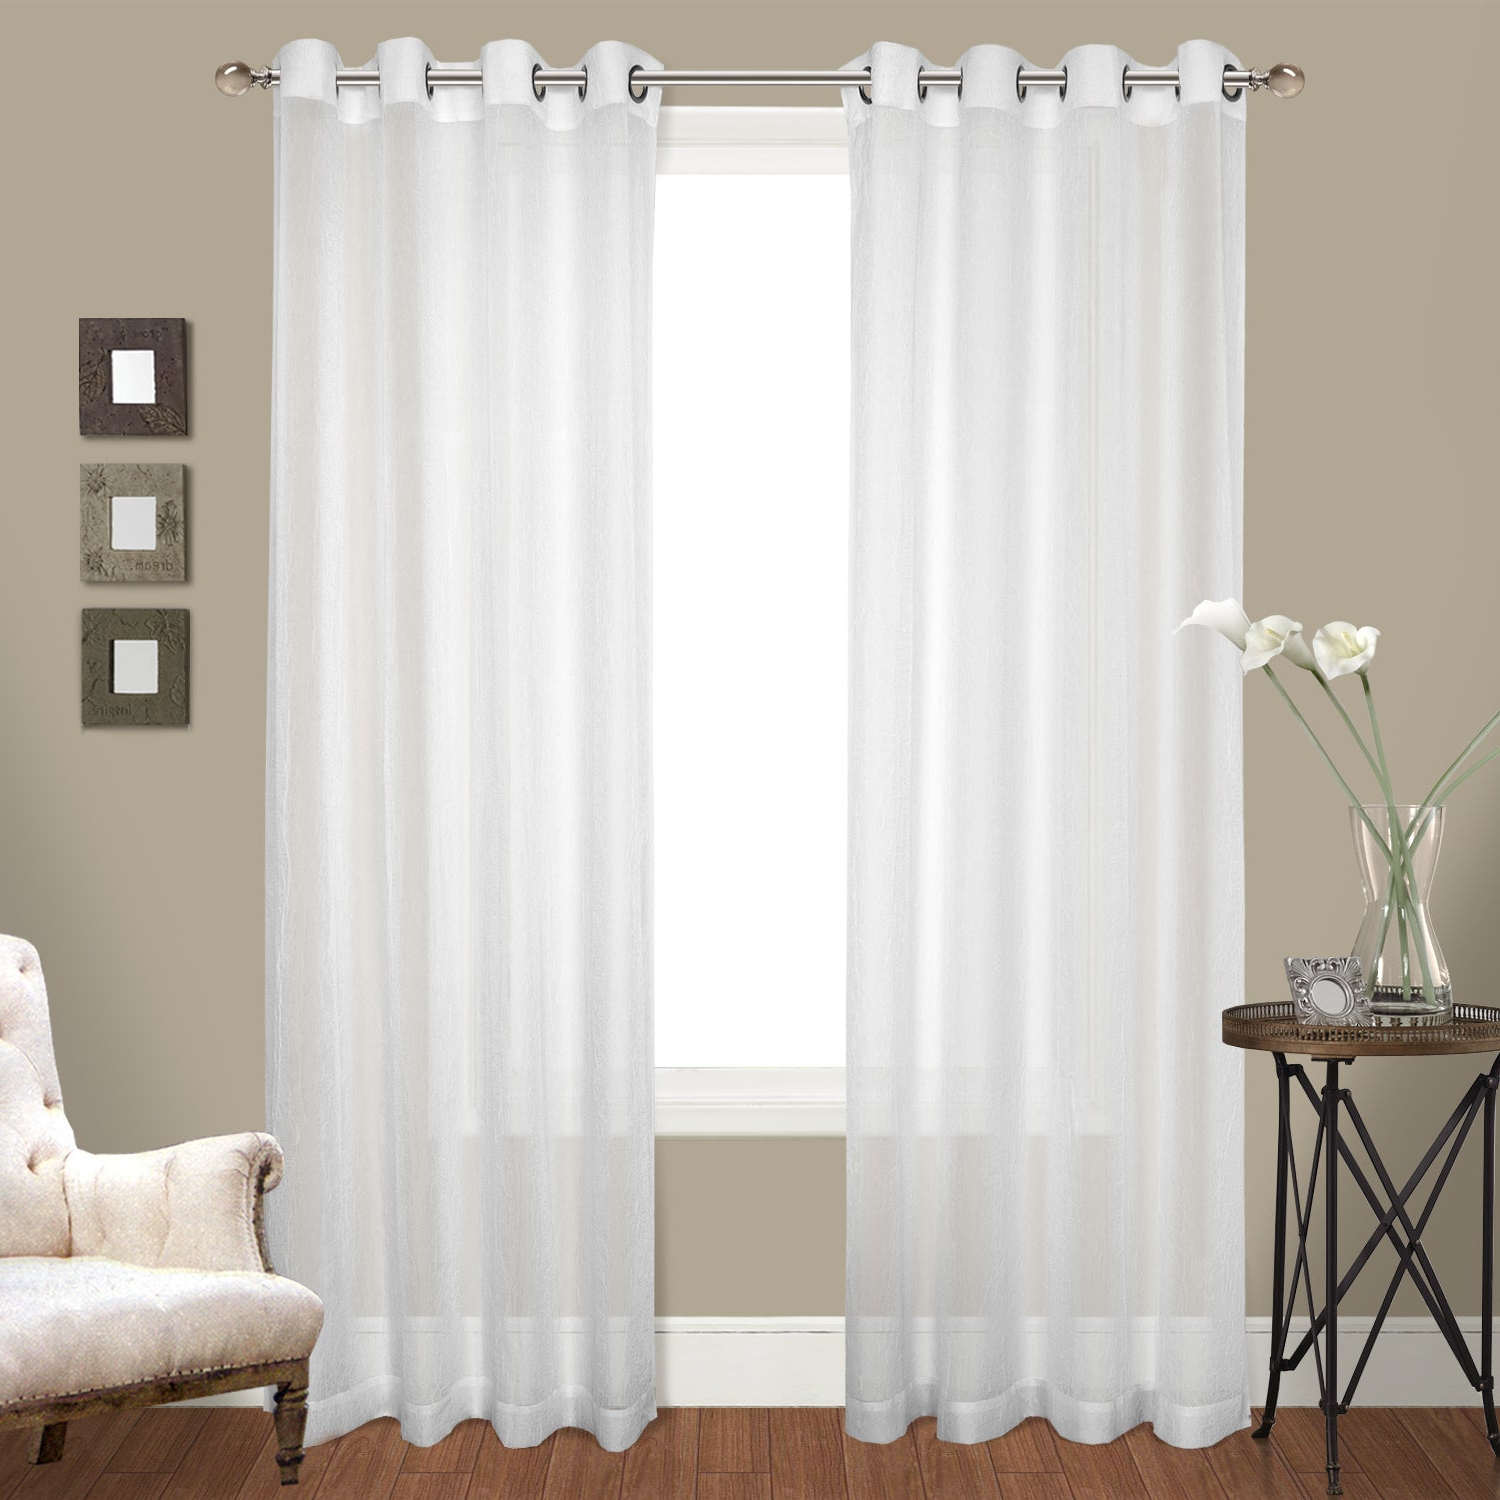 Most Recently Released Luxury Collection Monte Carlo Sheer Curtain Panel Pairs Pertaining To Luxury Collection Venetian Sheer Curtain Panel Pair (Gallery 5 of 20)